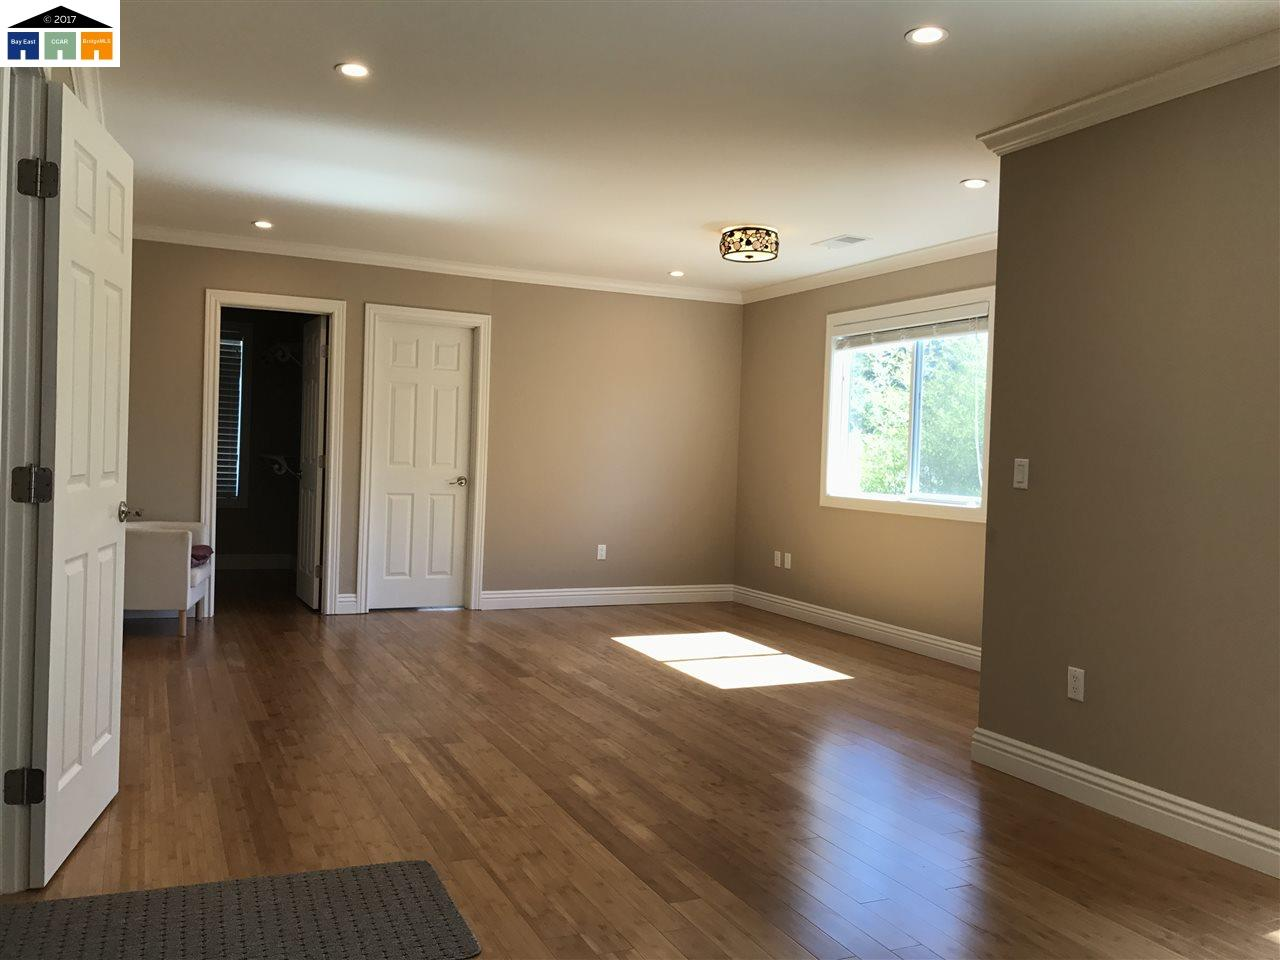 Additional photo for property listing at 22773 Lorand Way  Hayward, California 94541 United States